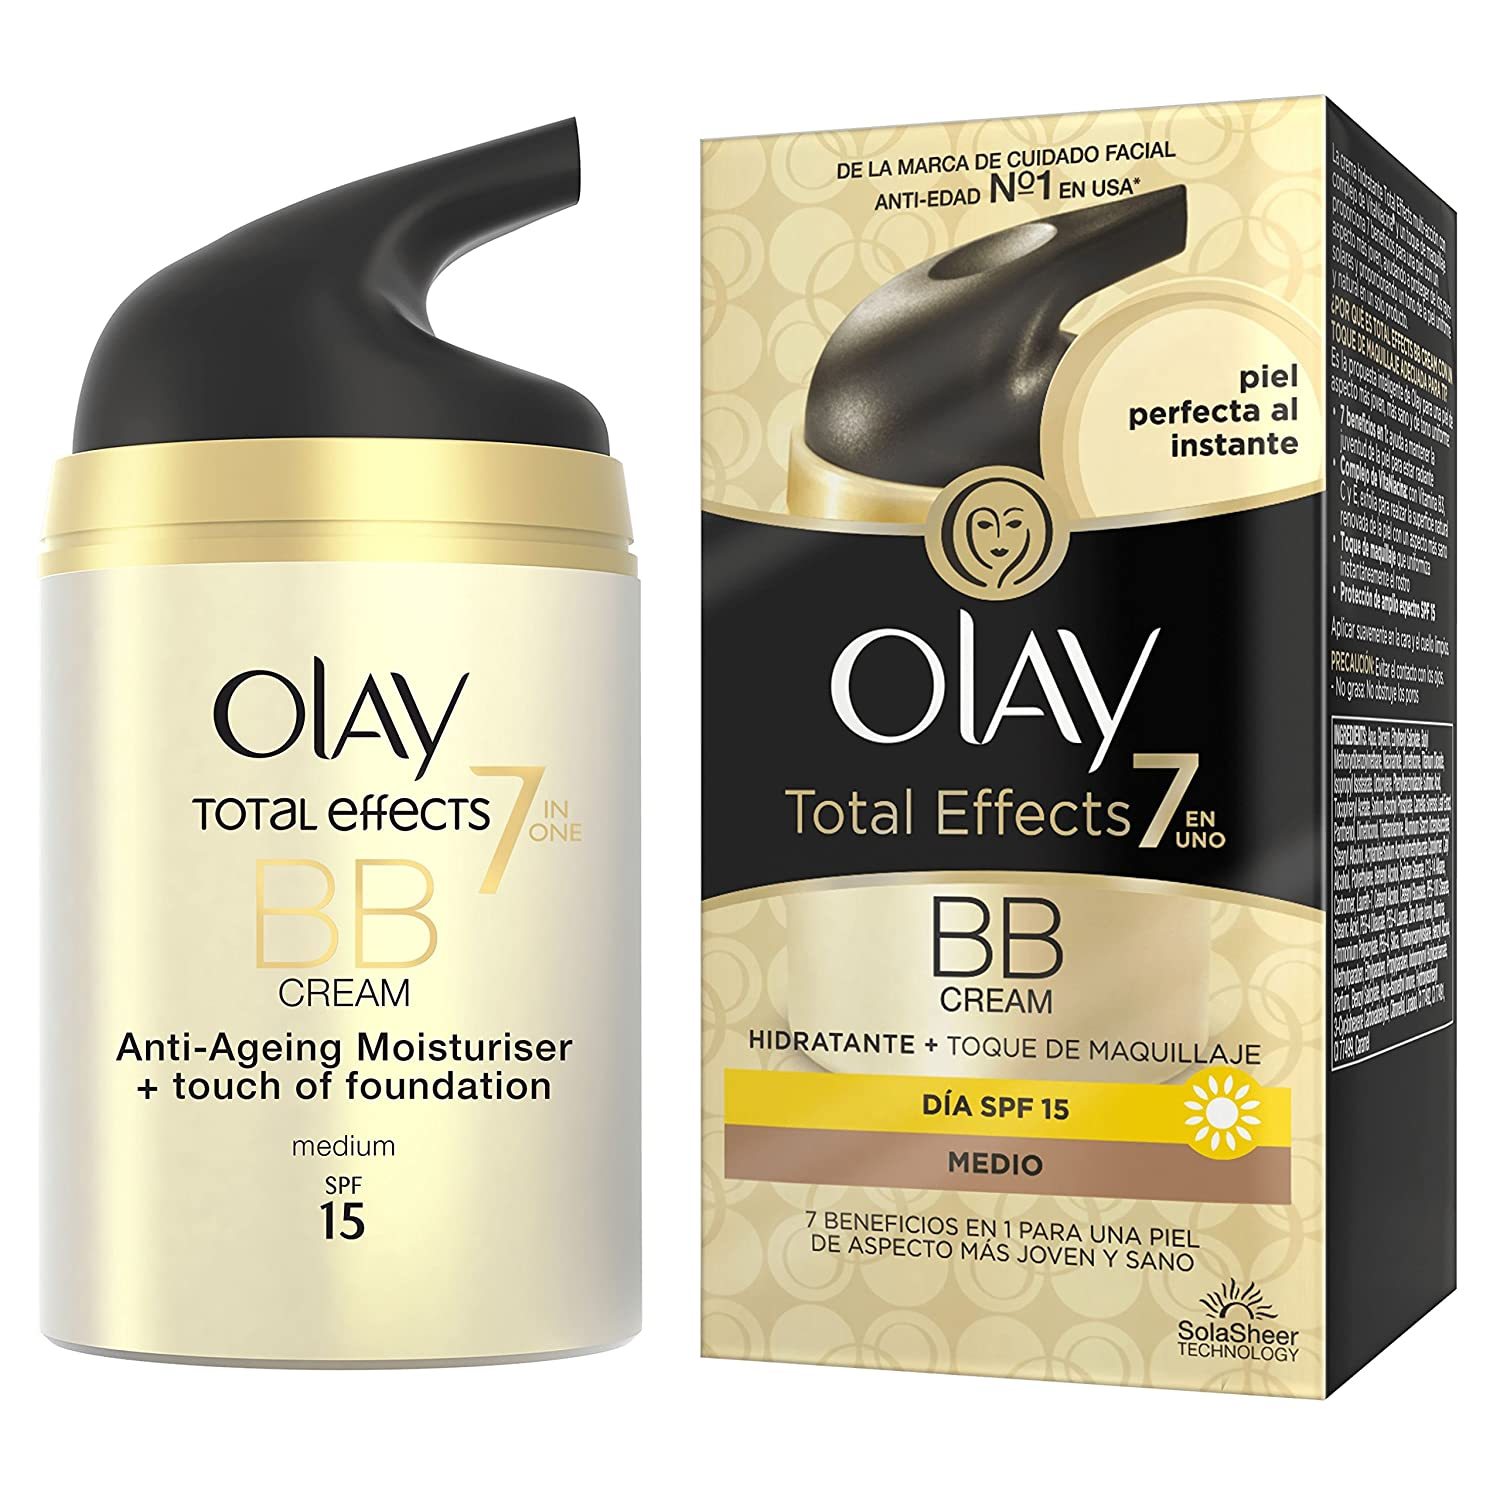 Olay Total Effects Crema Hidratante y Maquillaje Spf 15 Medio - 50 ml: Amazon.es: Belleza